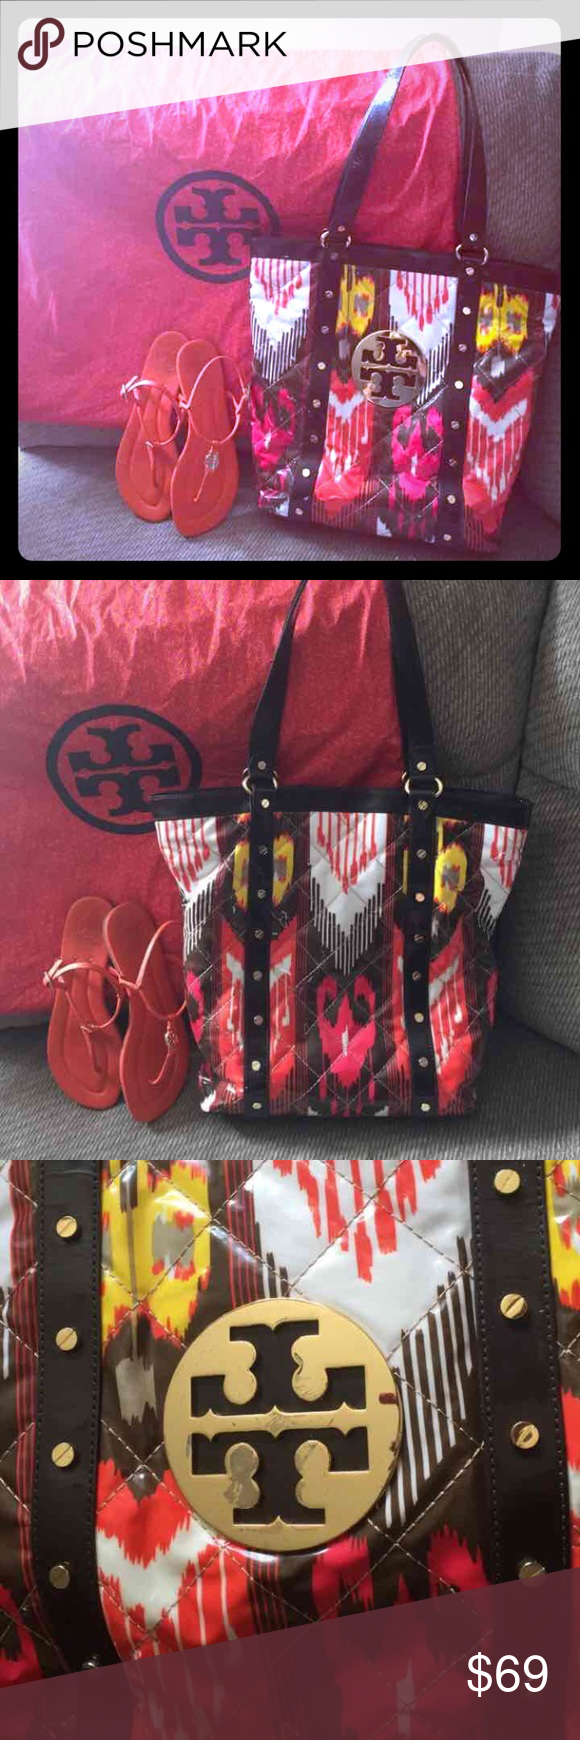 Tory Burch tote💯%authentic Beautiful Tory Burch tote preowned has some discoloration on rivets and emblem other than that in perfect condition no rips no damage Tory Burch Bags Totes